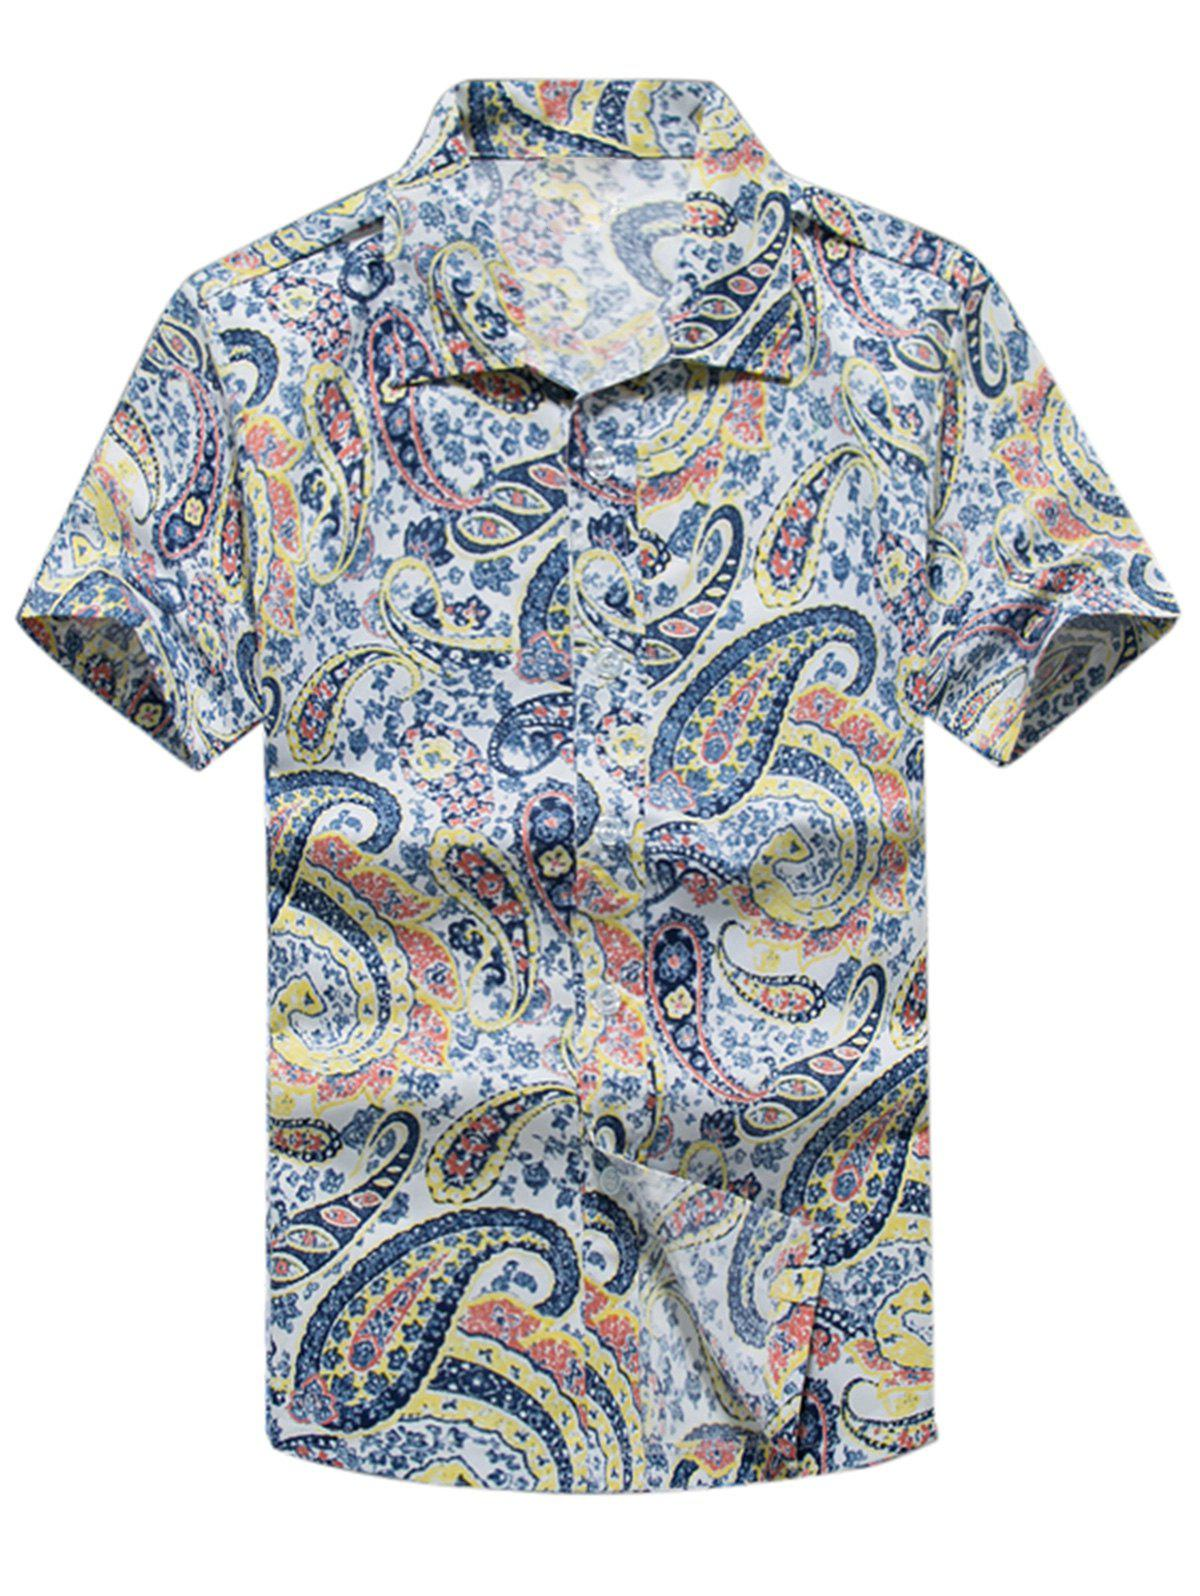 Online Paisley Print Casual Short Sleeve Shirt